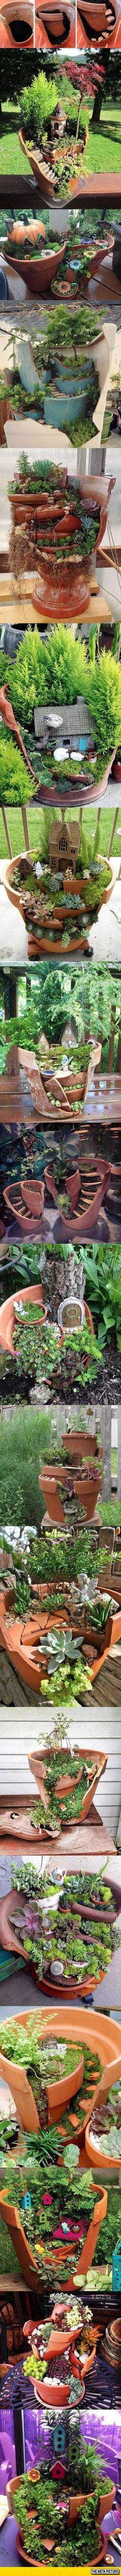 Nice 23 Diy Fairy Garden Ideas Homemade https://ideacoration.co/2018/02/03/23-diy-fairy-garden-ideas-homemade/ You end up getting a 3 tiered garden look which is both stunning and space saving.